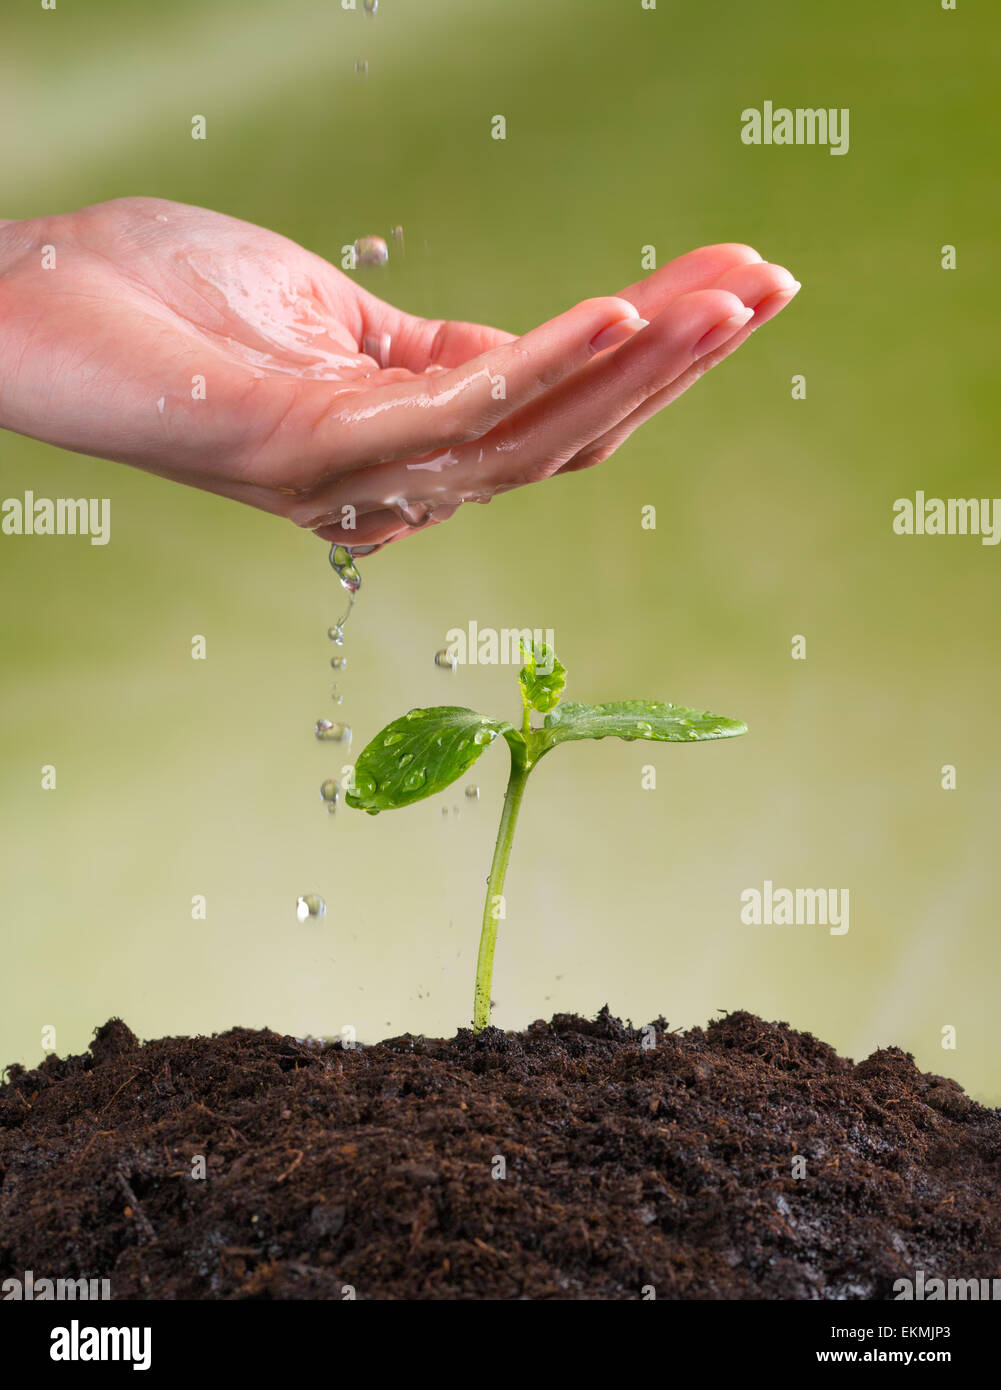 Woman hand watering young plant in pile of soil - Stock Image